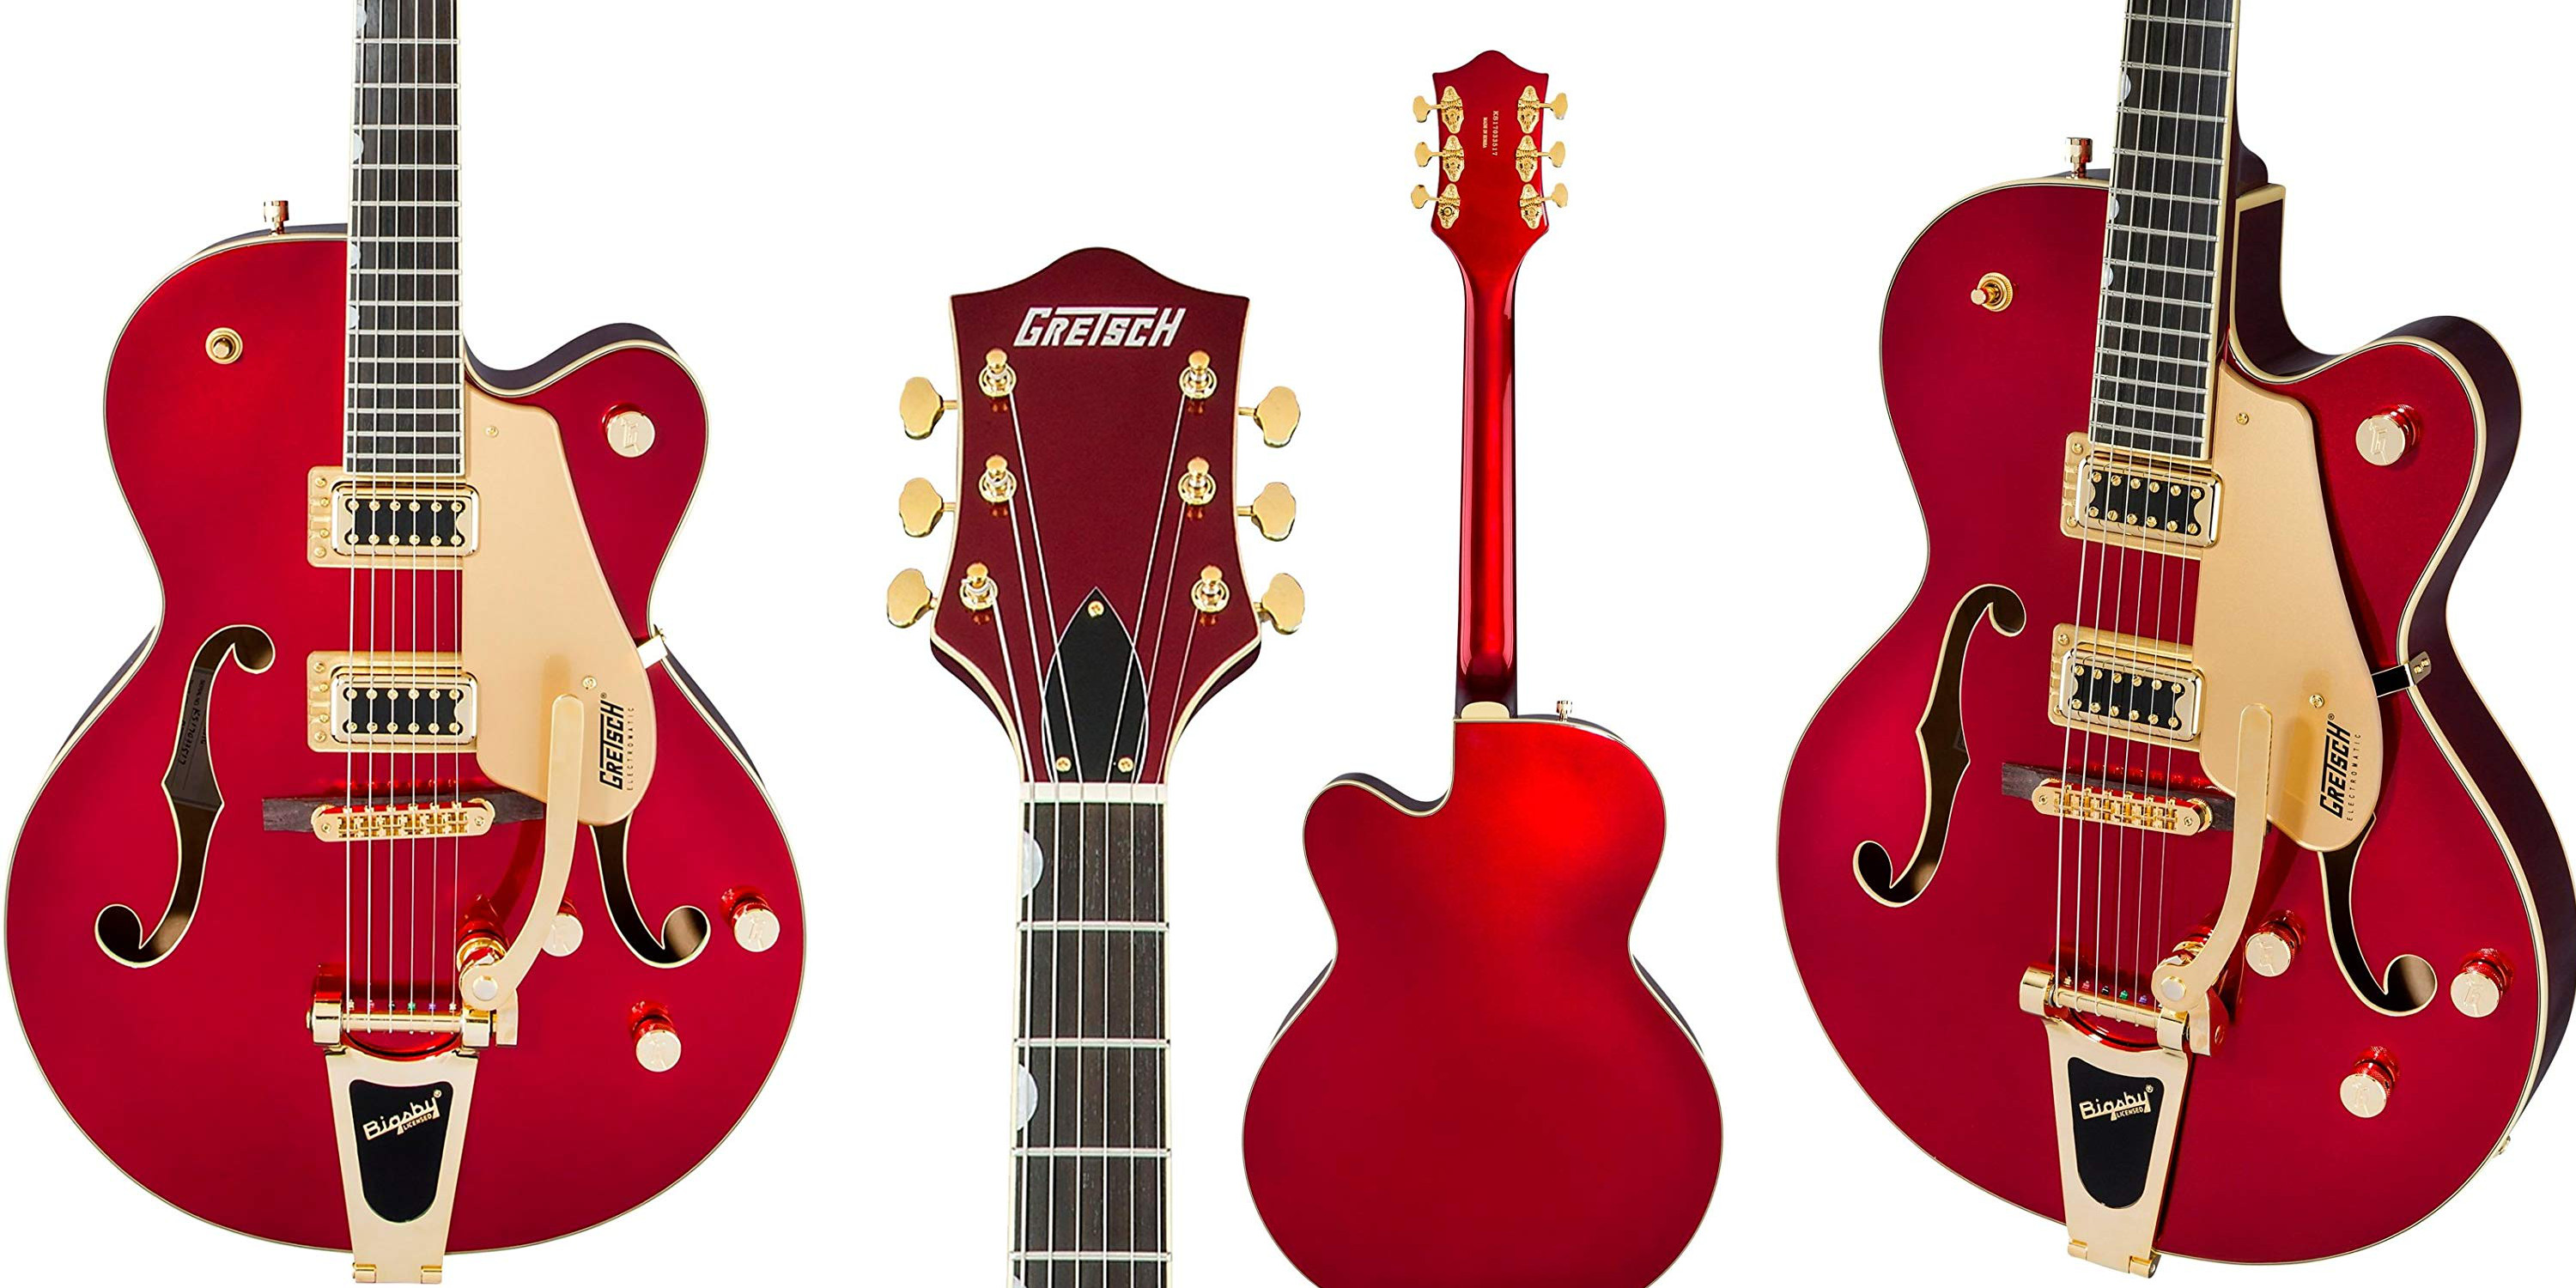 The Gretsch G5420TG Electric Guitar in Candy Apple Red is now $250 off the going rate